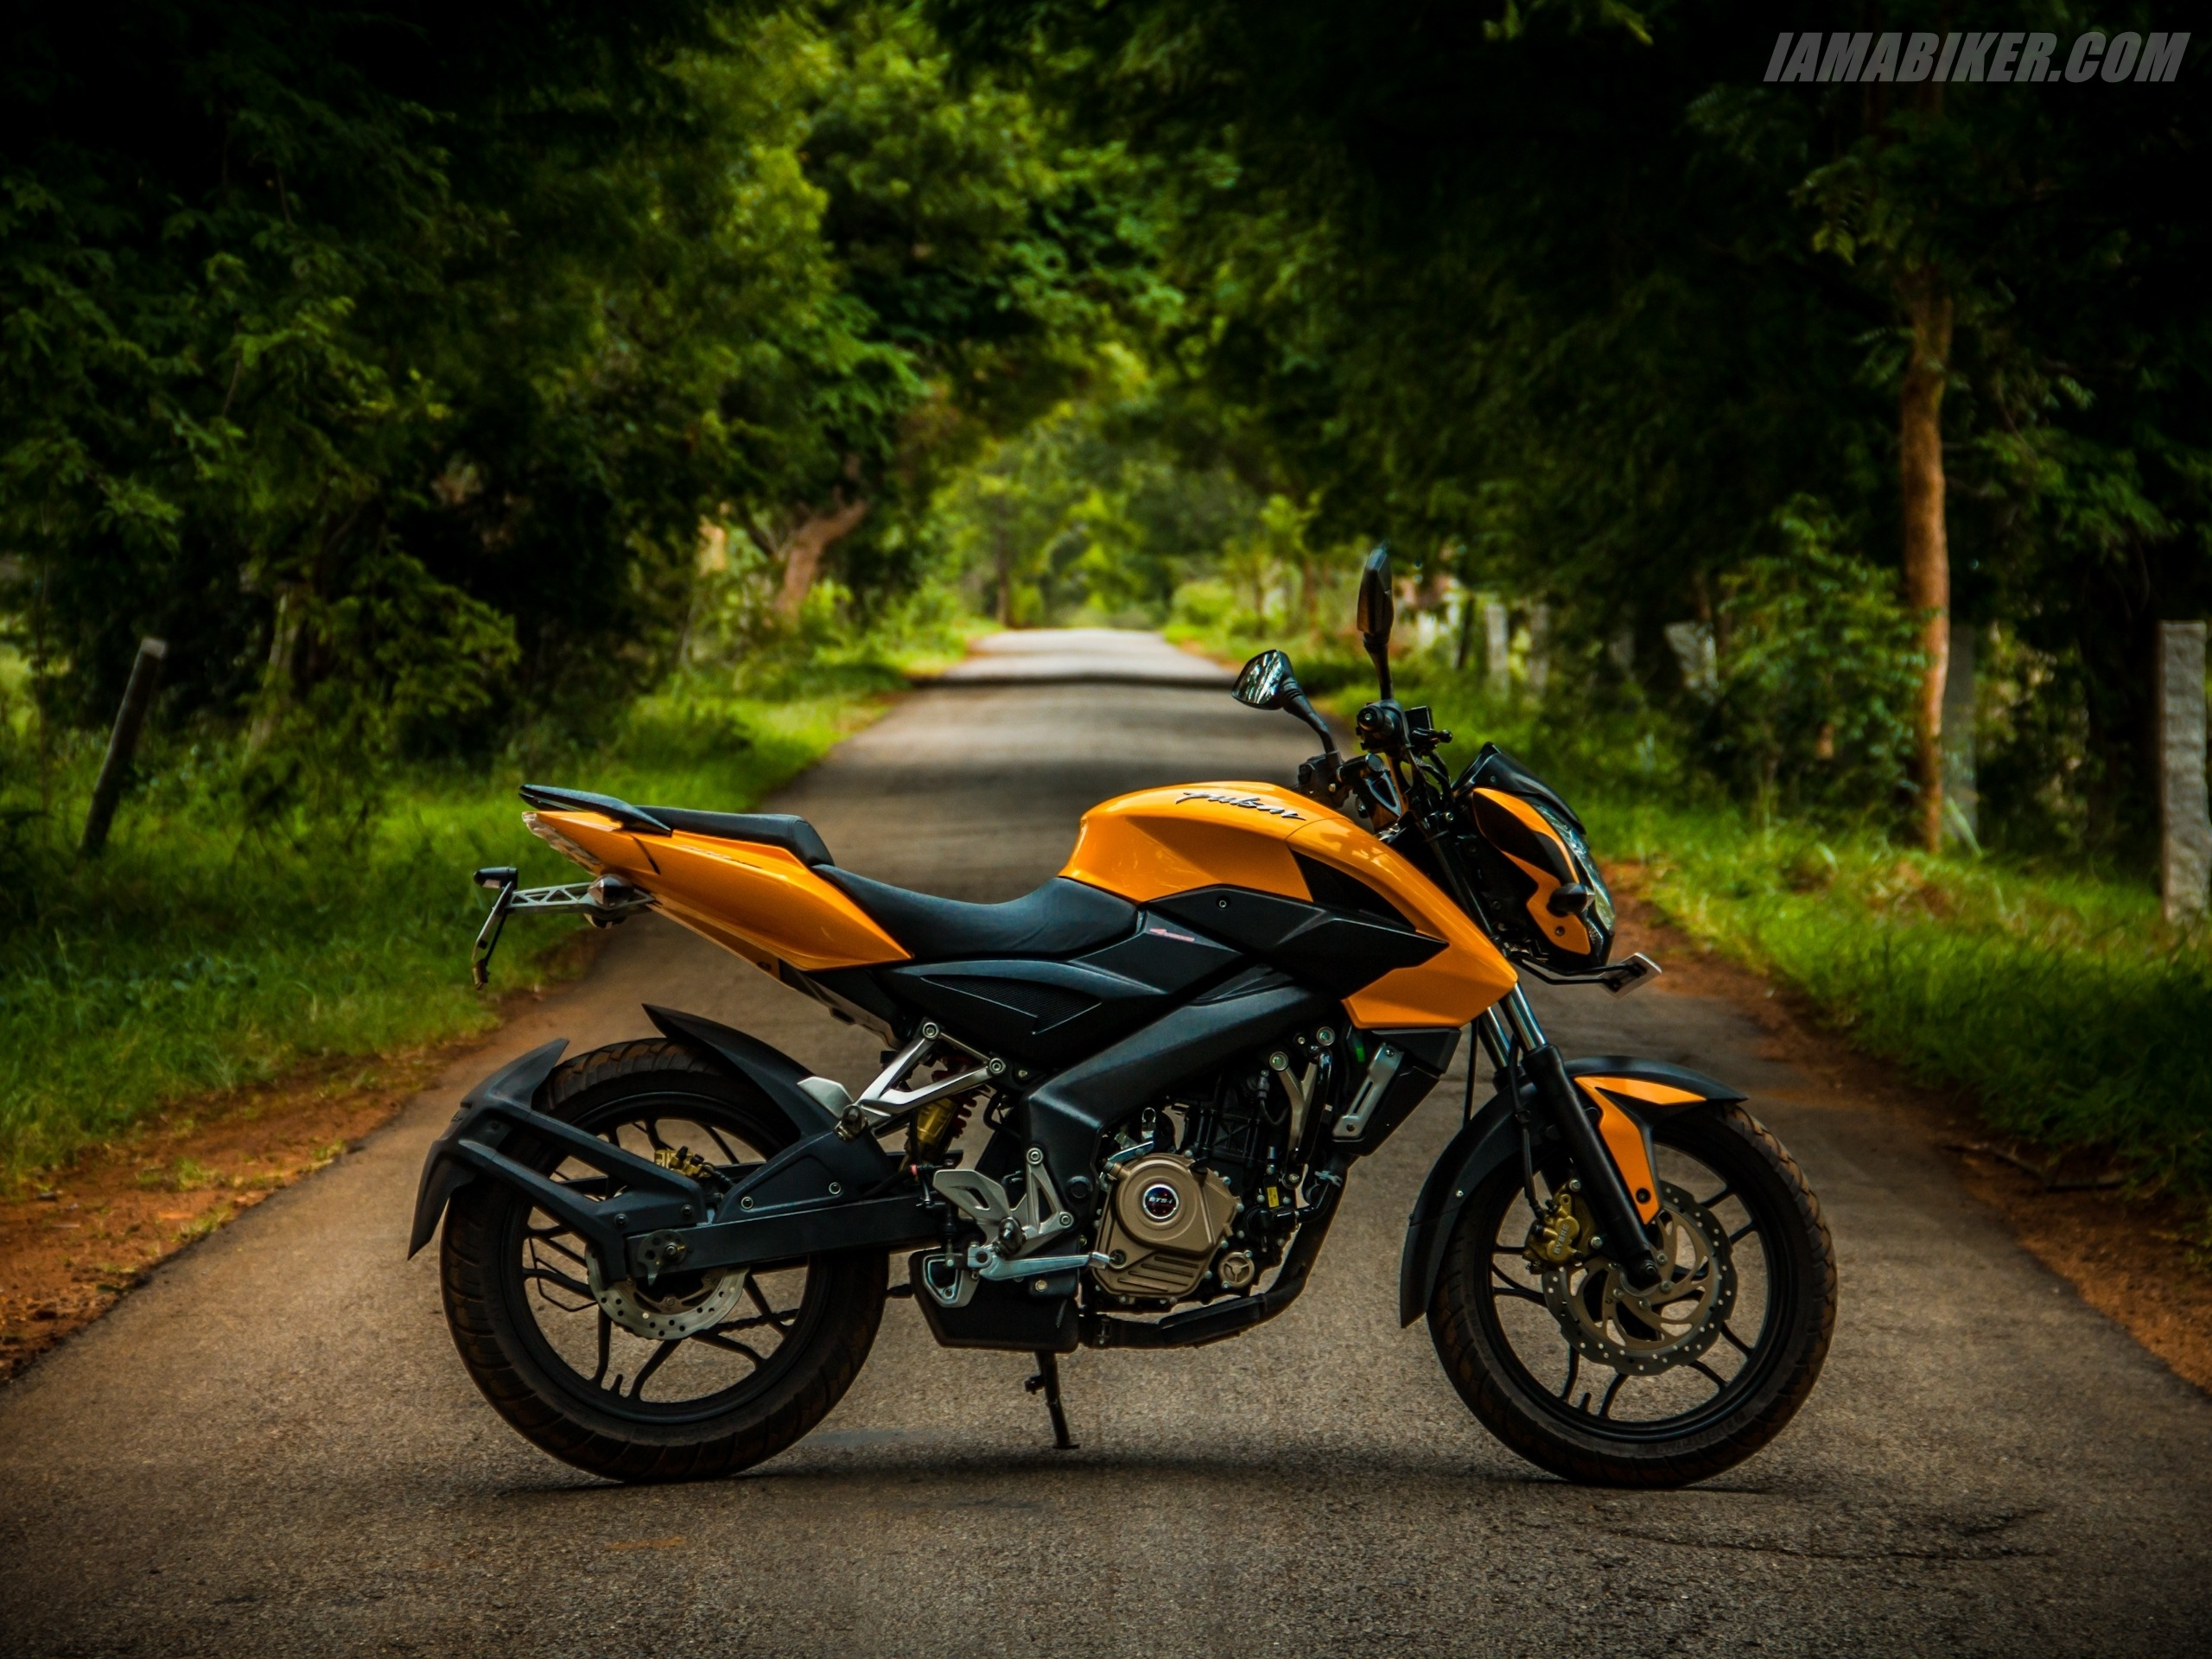 Pulsar 200ns Hd Wallpapers